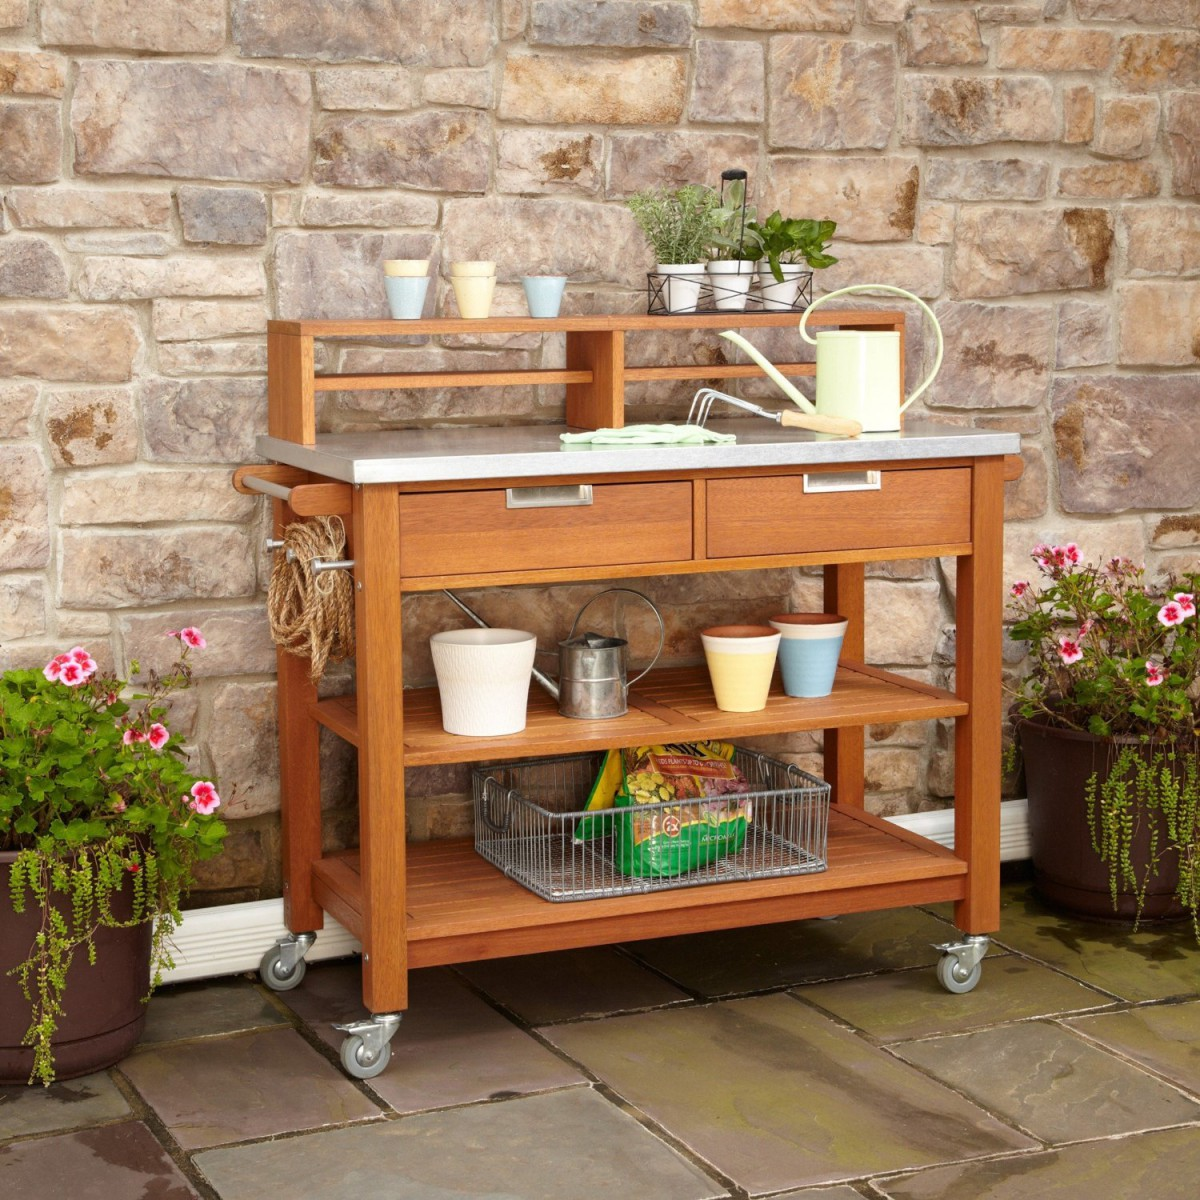 Home Styles Bali Hai Teak Wood Outdoor Potting Bench